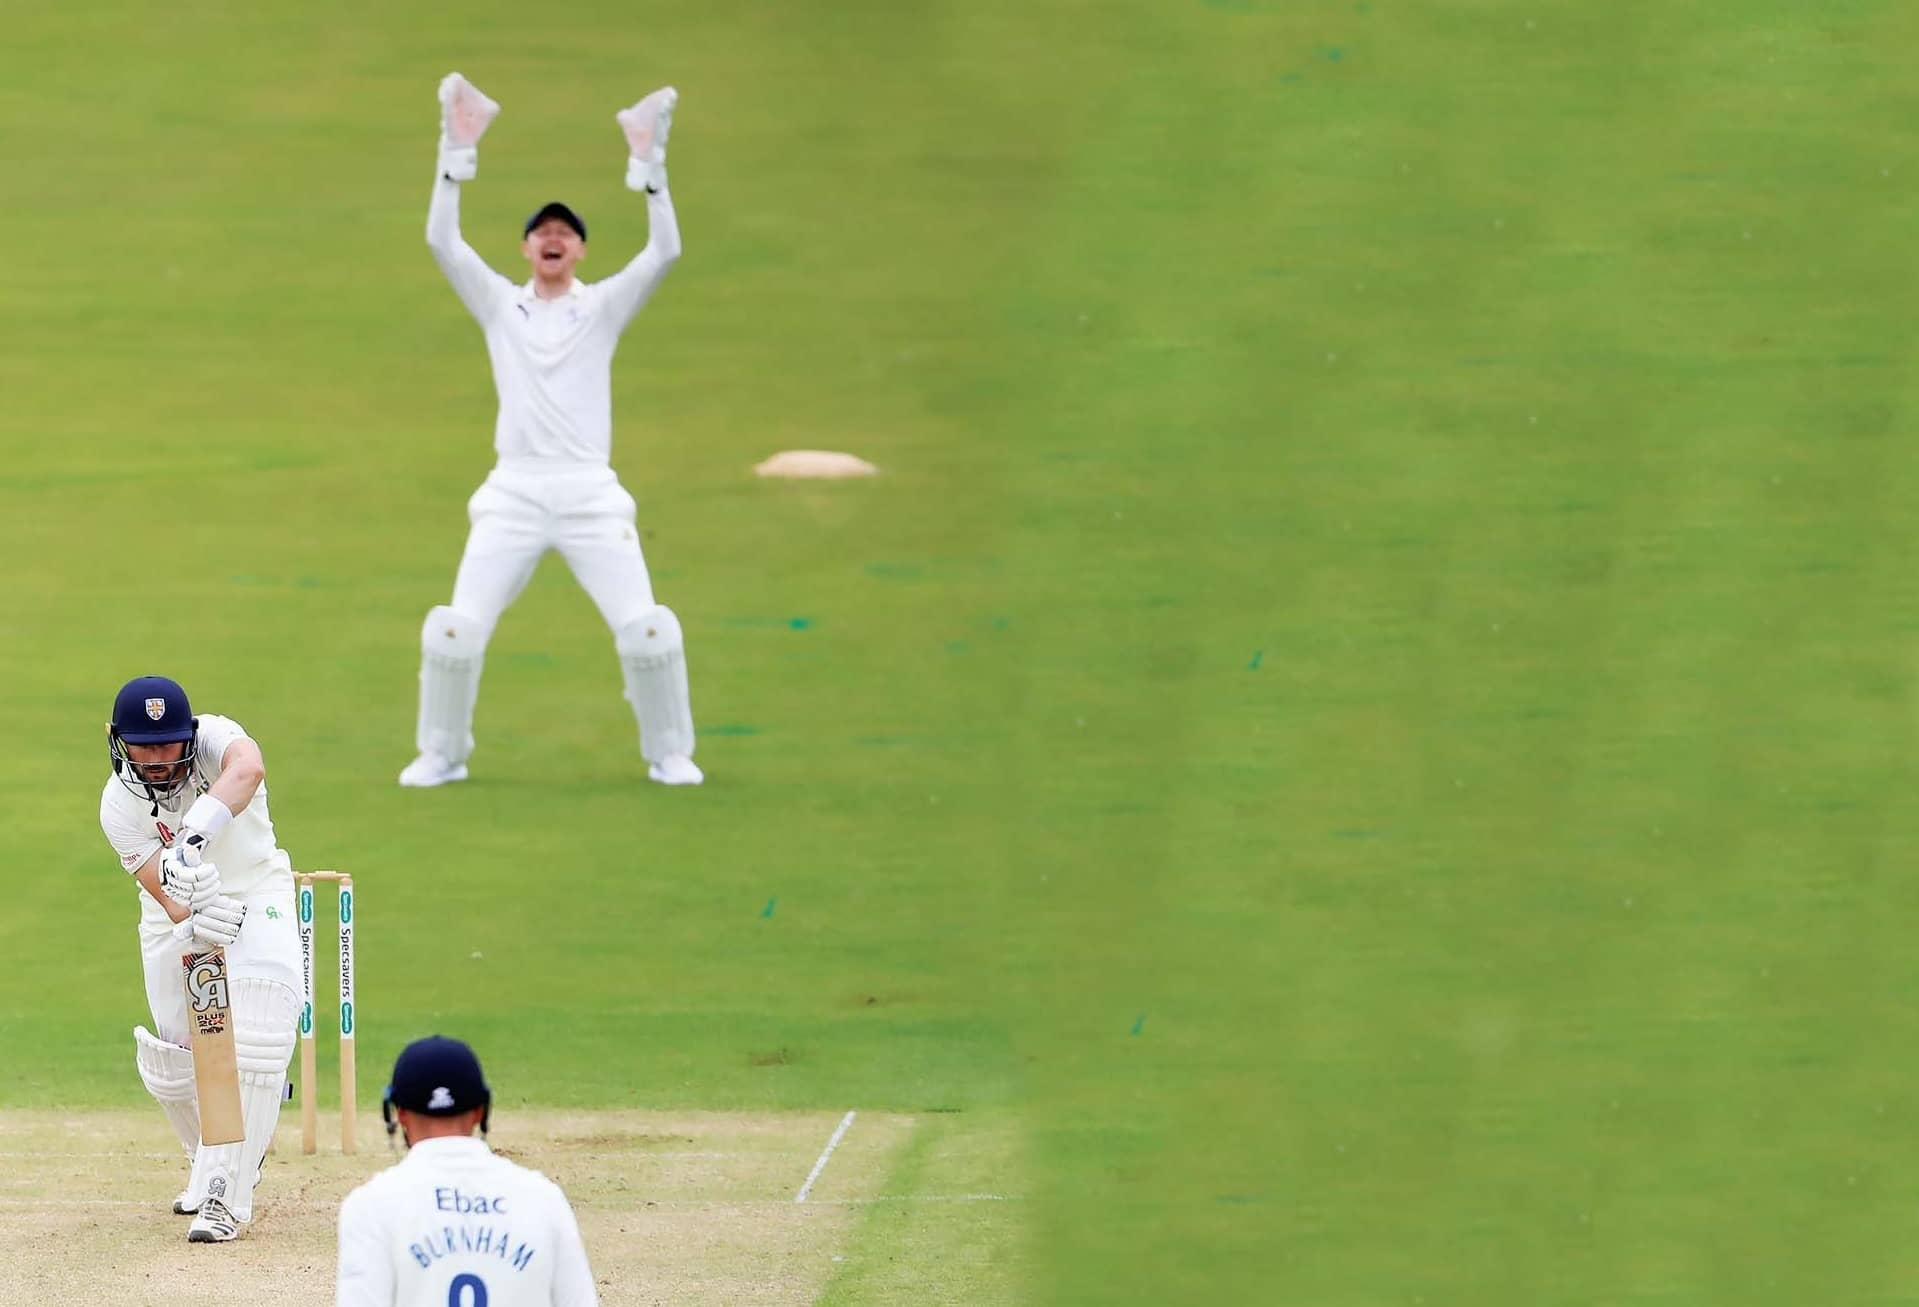 Rushworth upstaged as Fisher reels Durham in